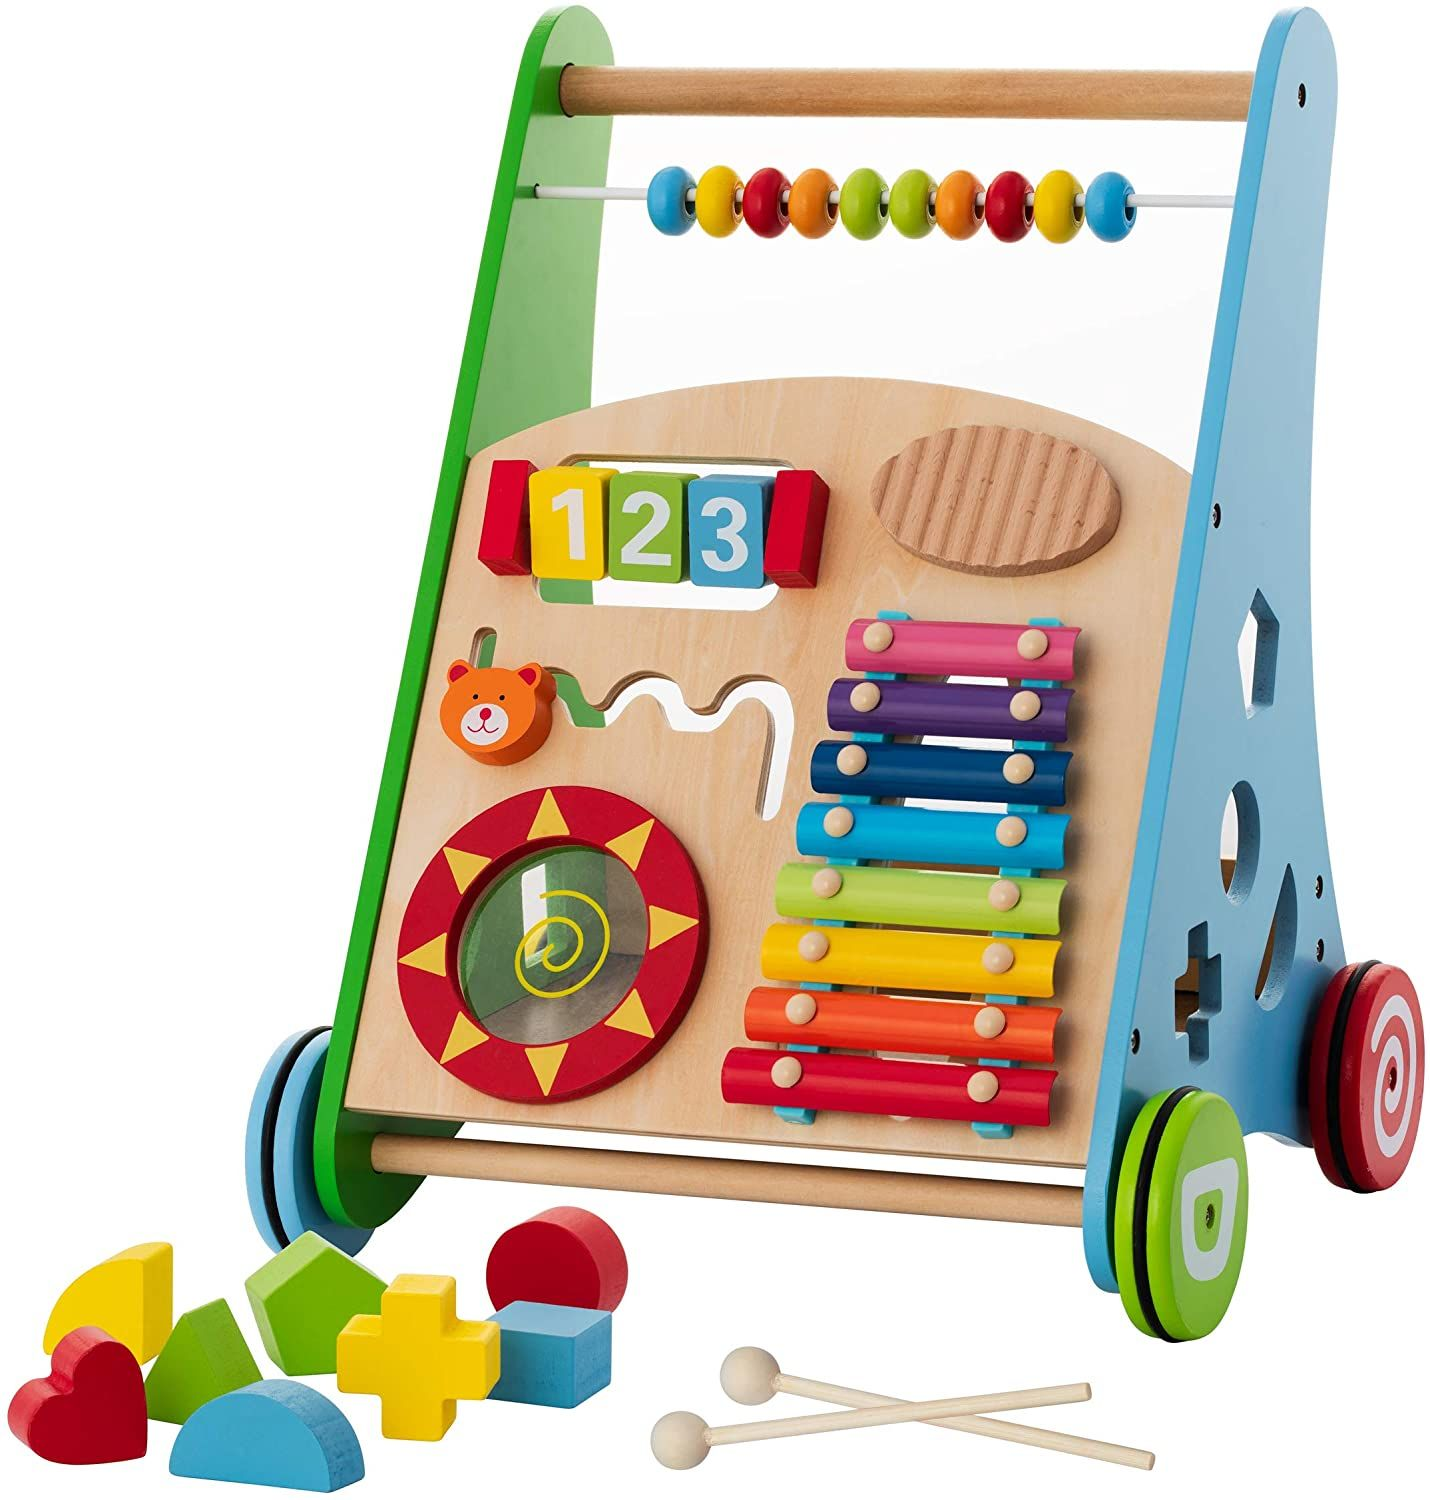 Baby Toys Kids Activity Toy Wooden Push And Pull Learning Walker For Boys And Girls Multiple Activities C In 2020 Activity Toys Wooden Baby Walker Baby Musical Toys